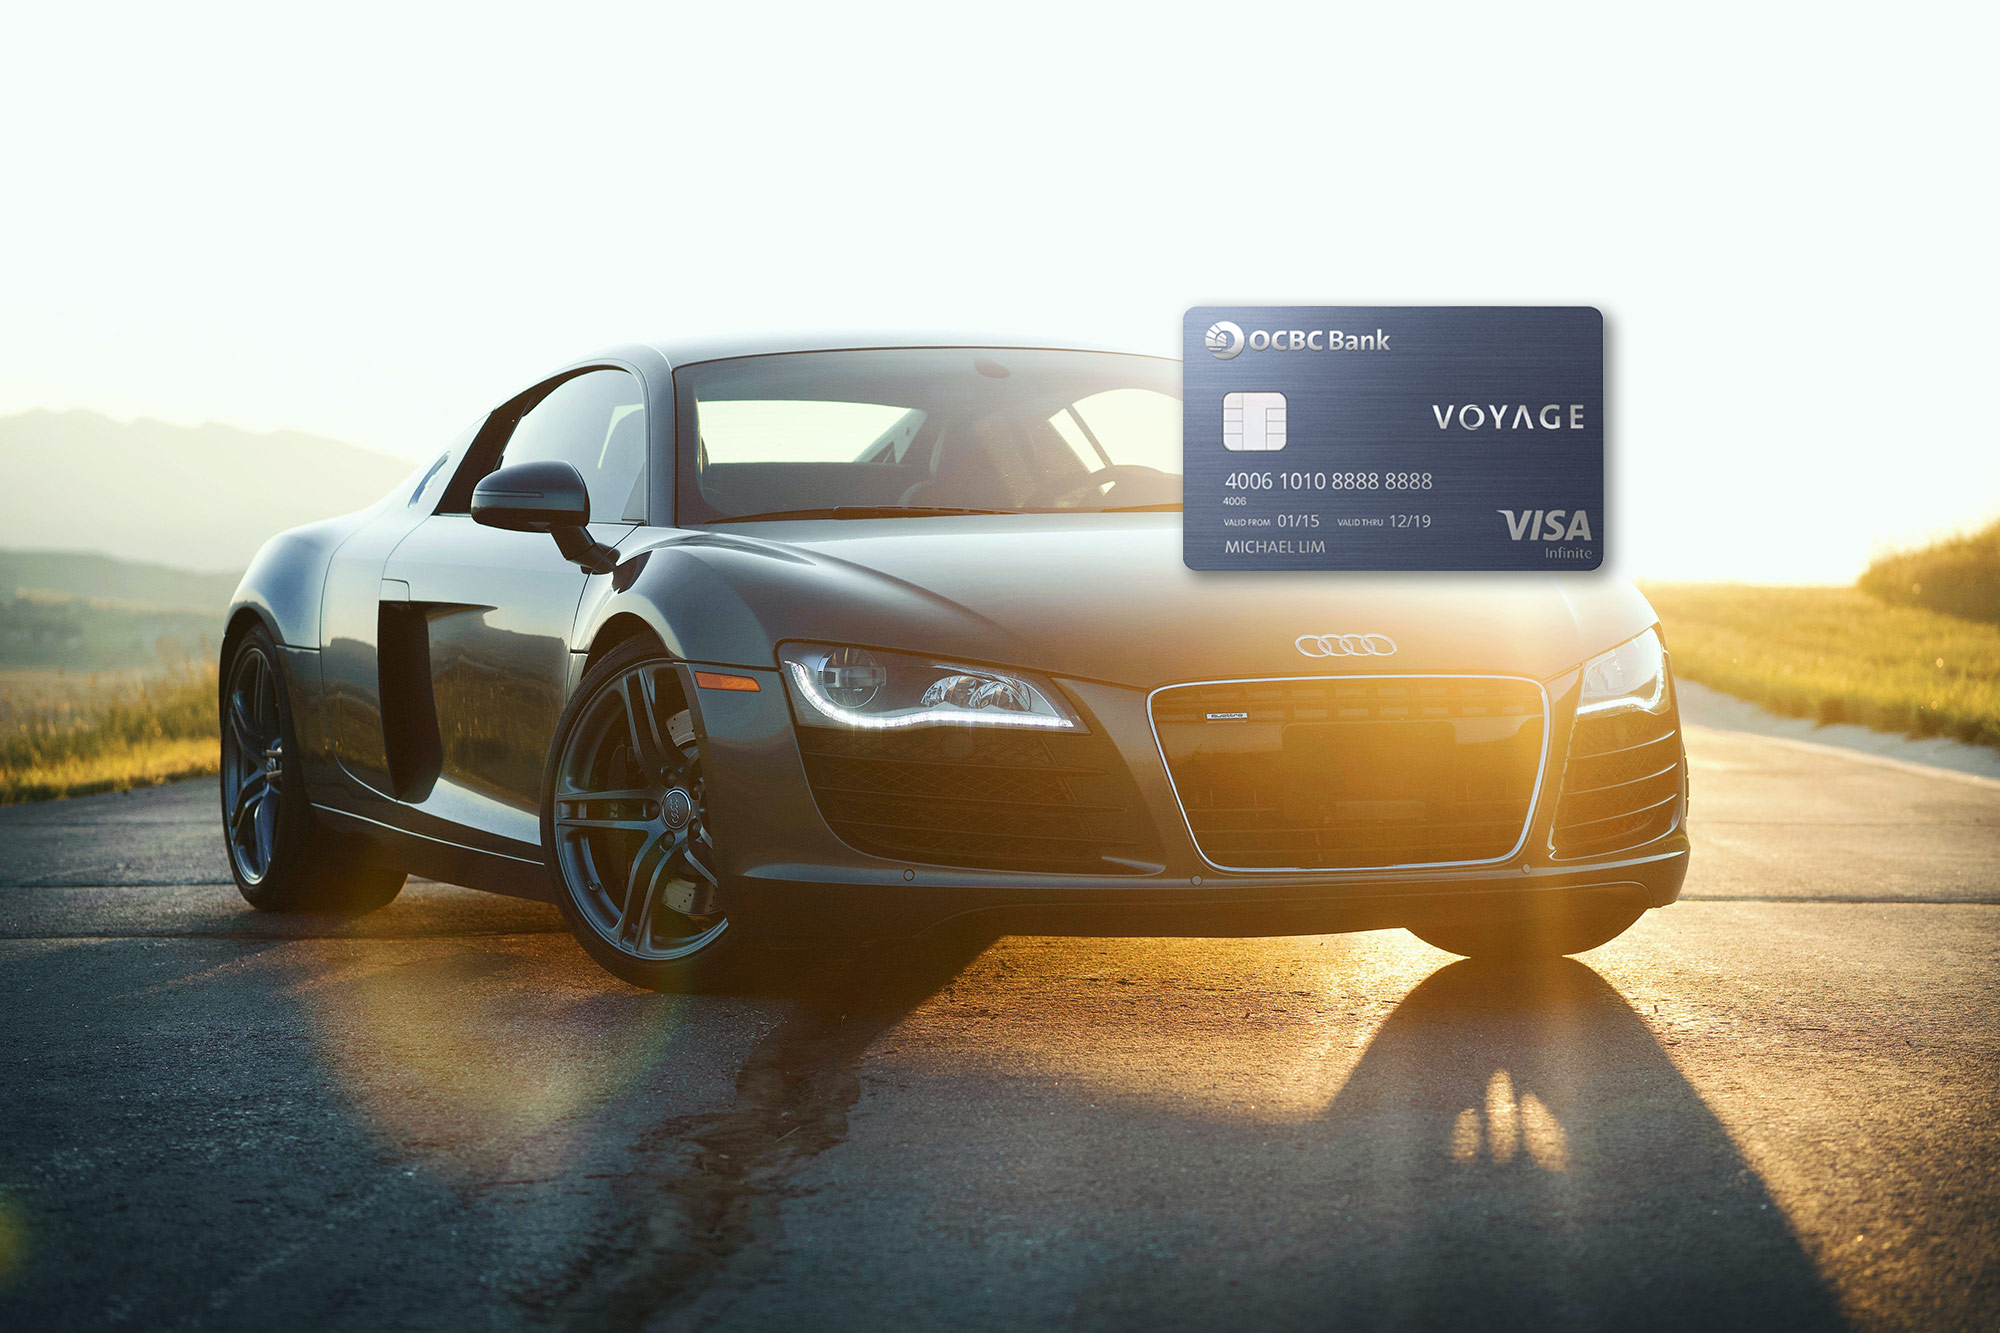 Earn up to 3.3 mpd with your OCBC Voyage card on Apple products, watches… cars!